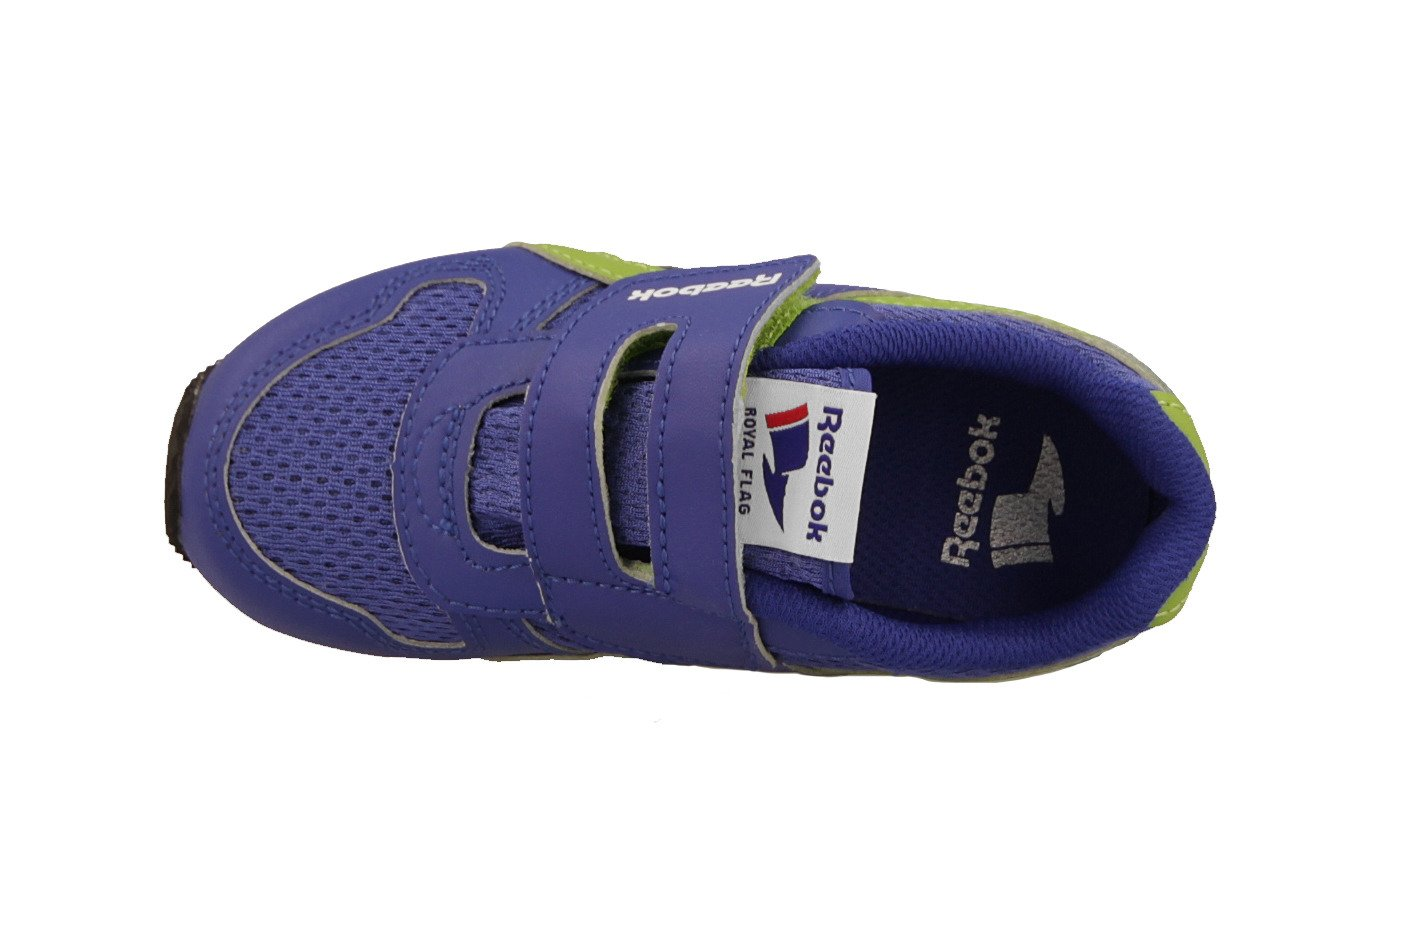 https://yessport.pl/pol_pl_BUTY-REEBOK-ROYAL-CLJOGGER-KC-M47234-7592_4.jpg